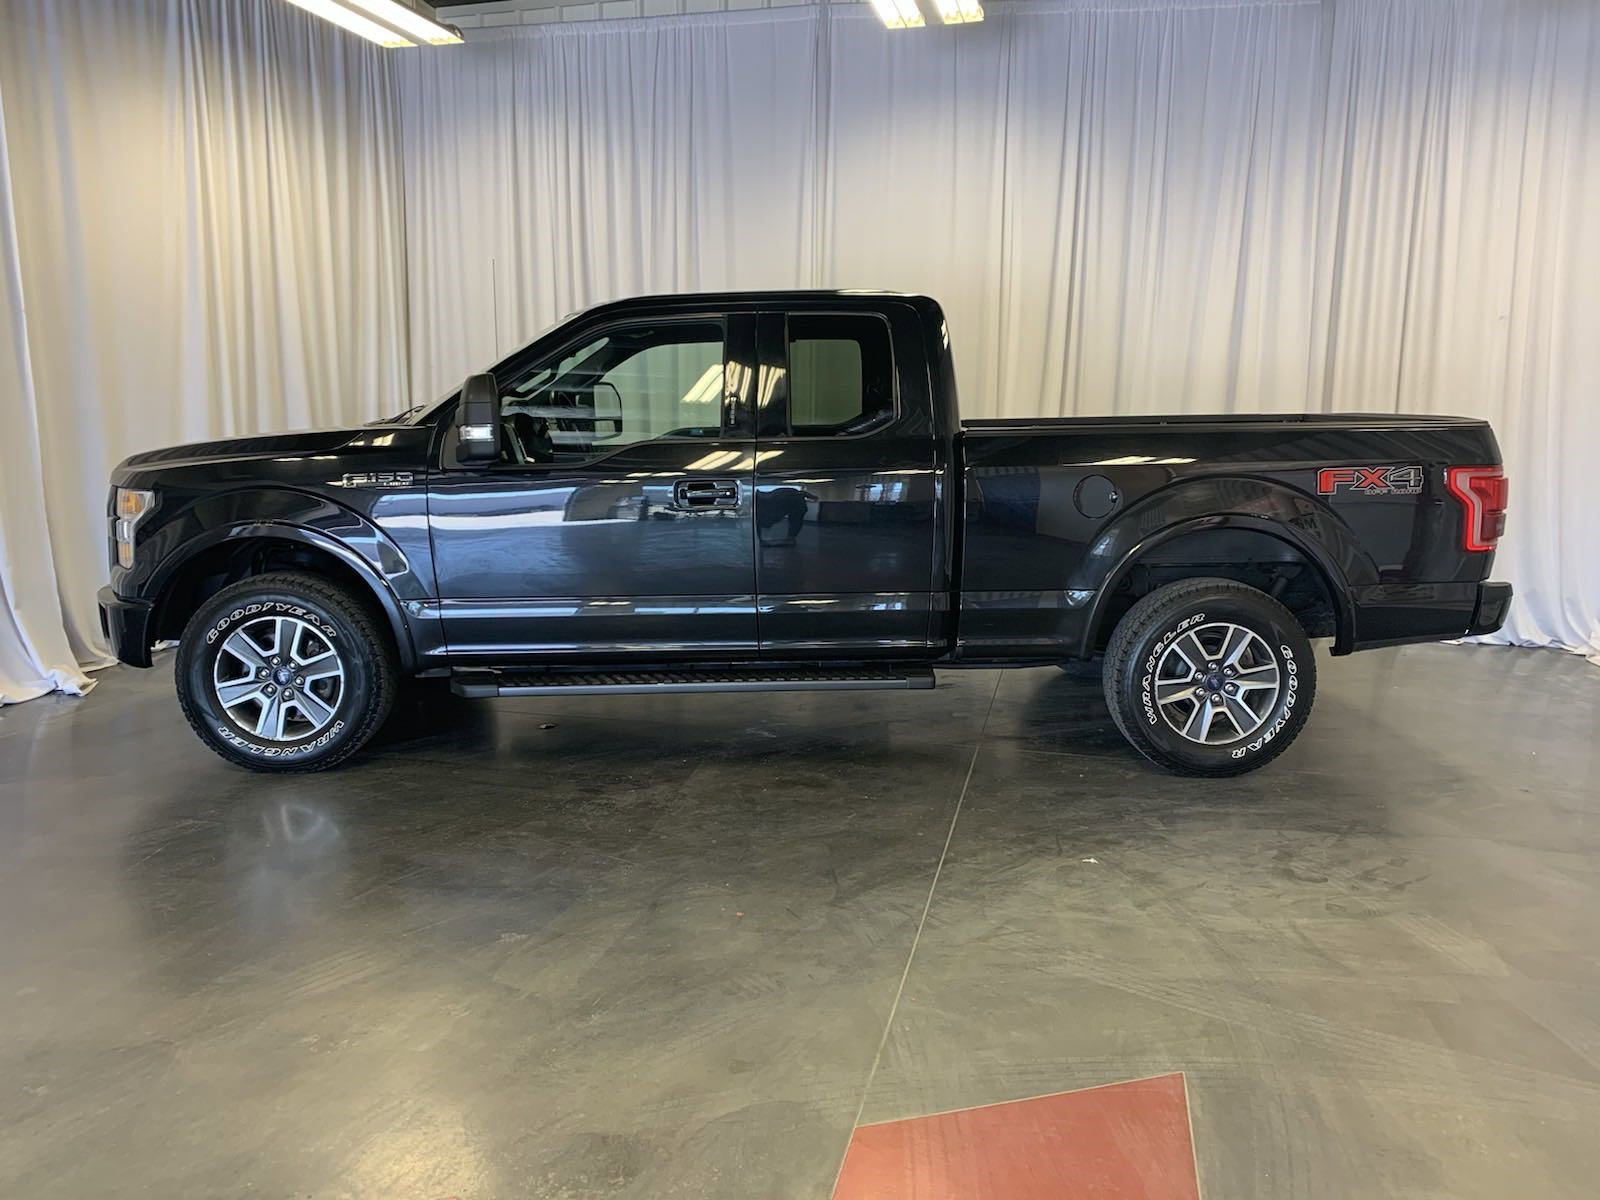 Used 2015 Ford F-150 Lariat Extended Cab Pickup for sale in St Joseph MO